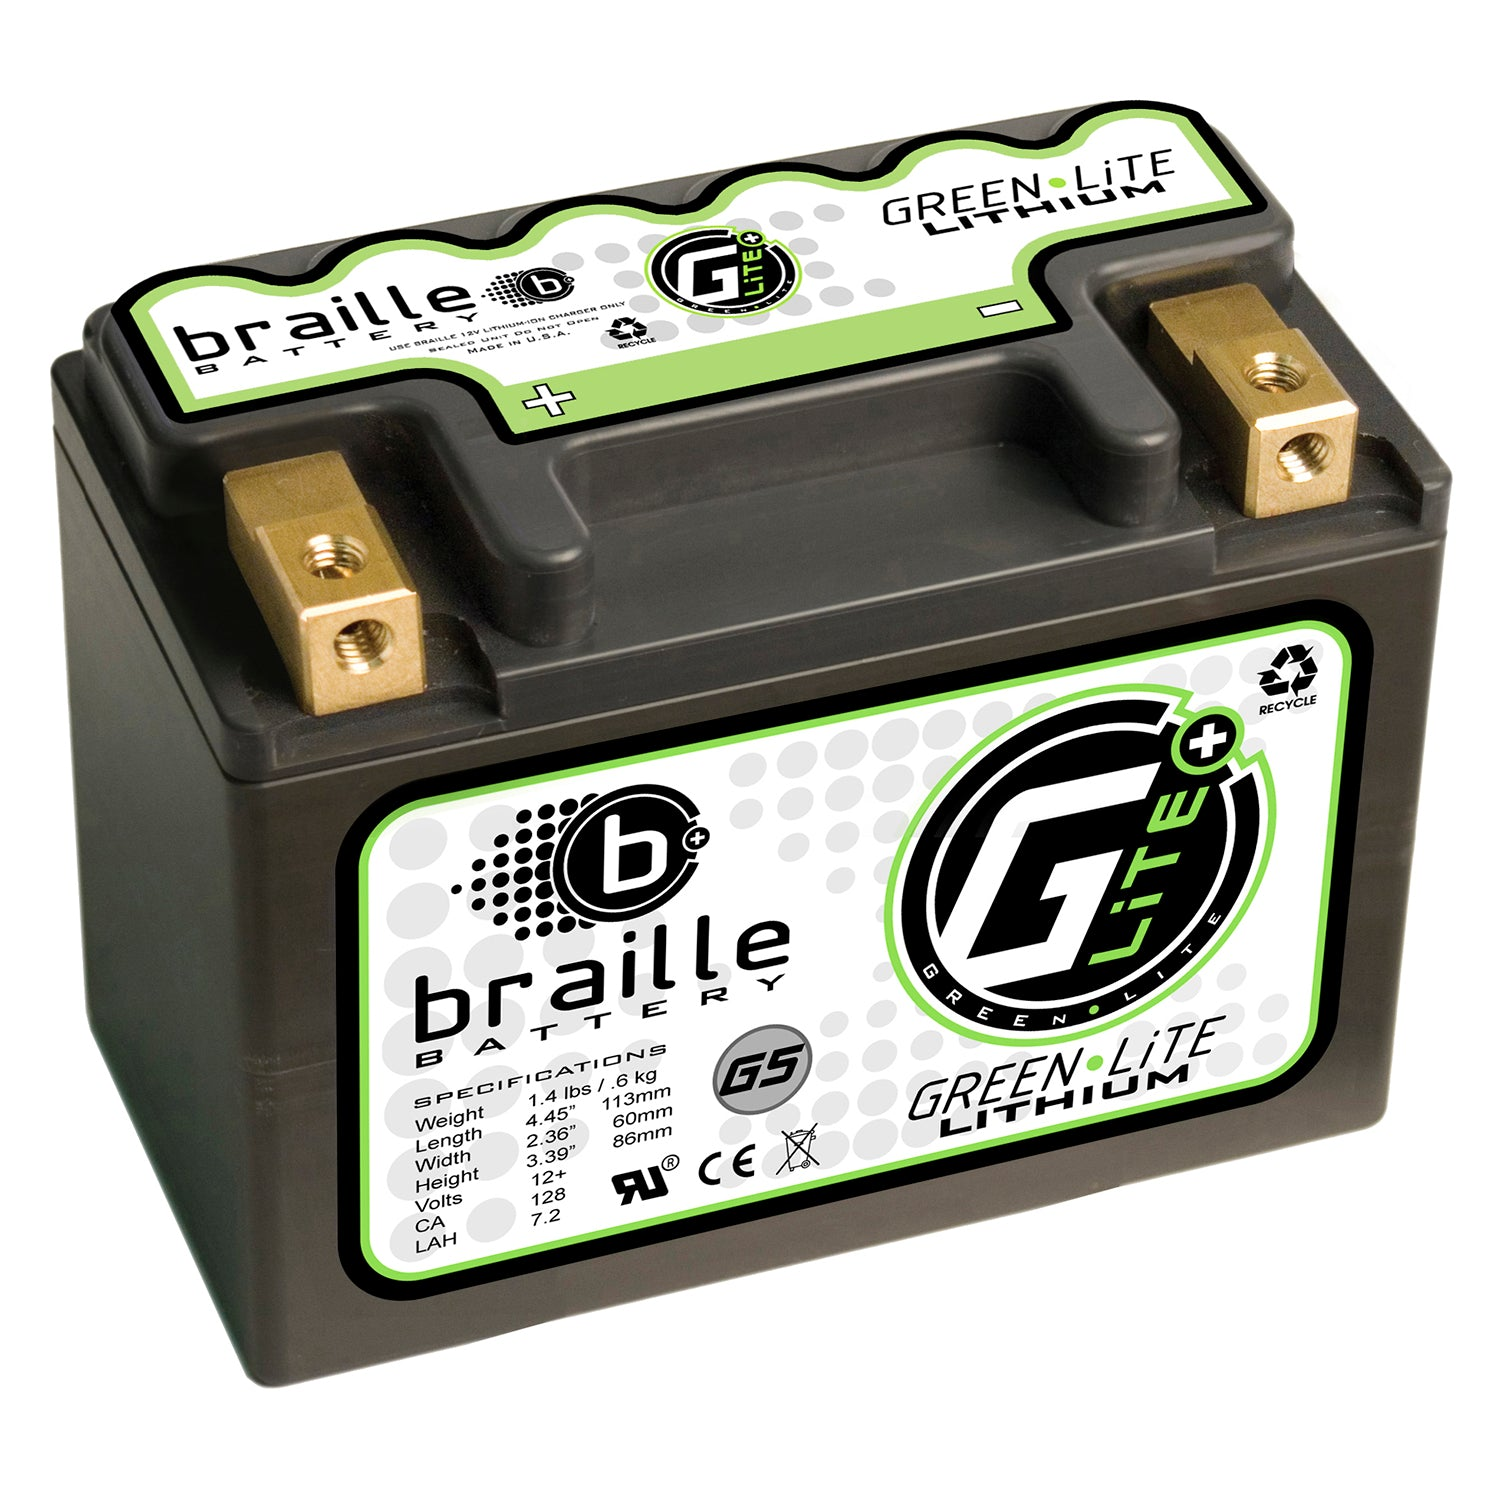 G5L - GreenLite lithium battery